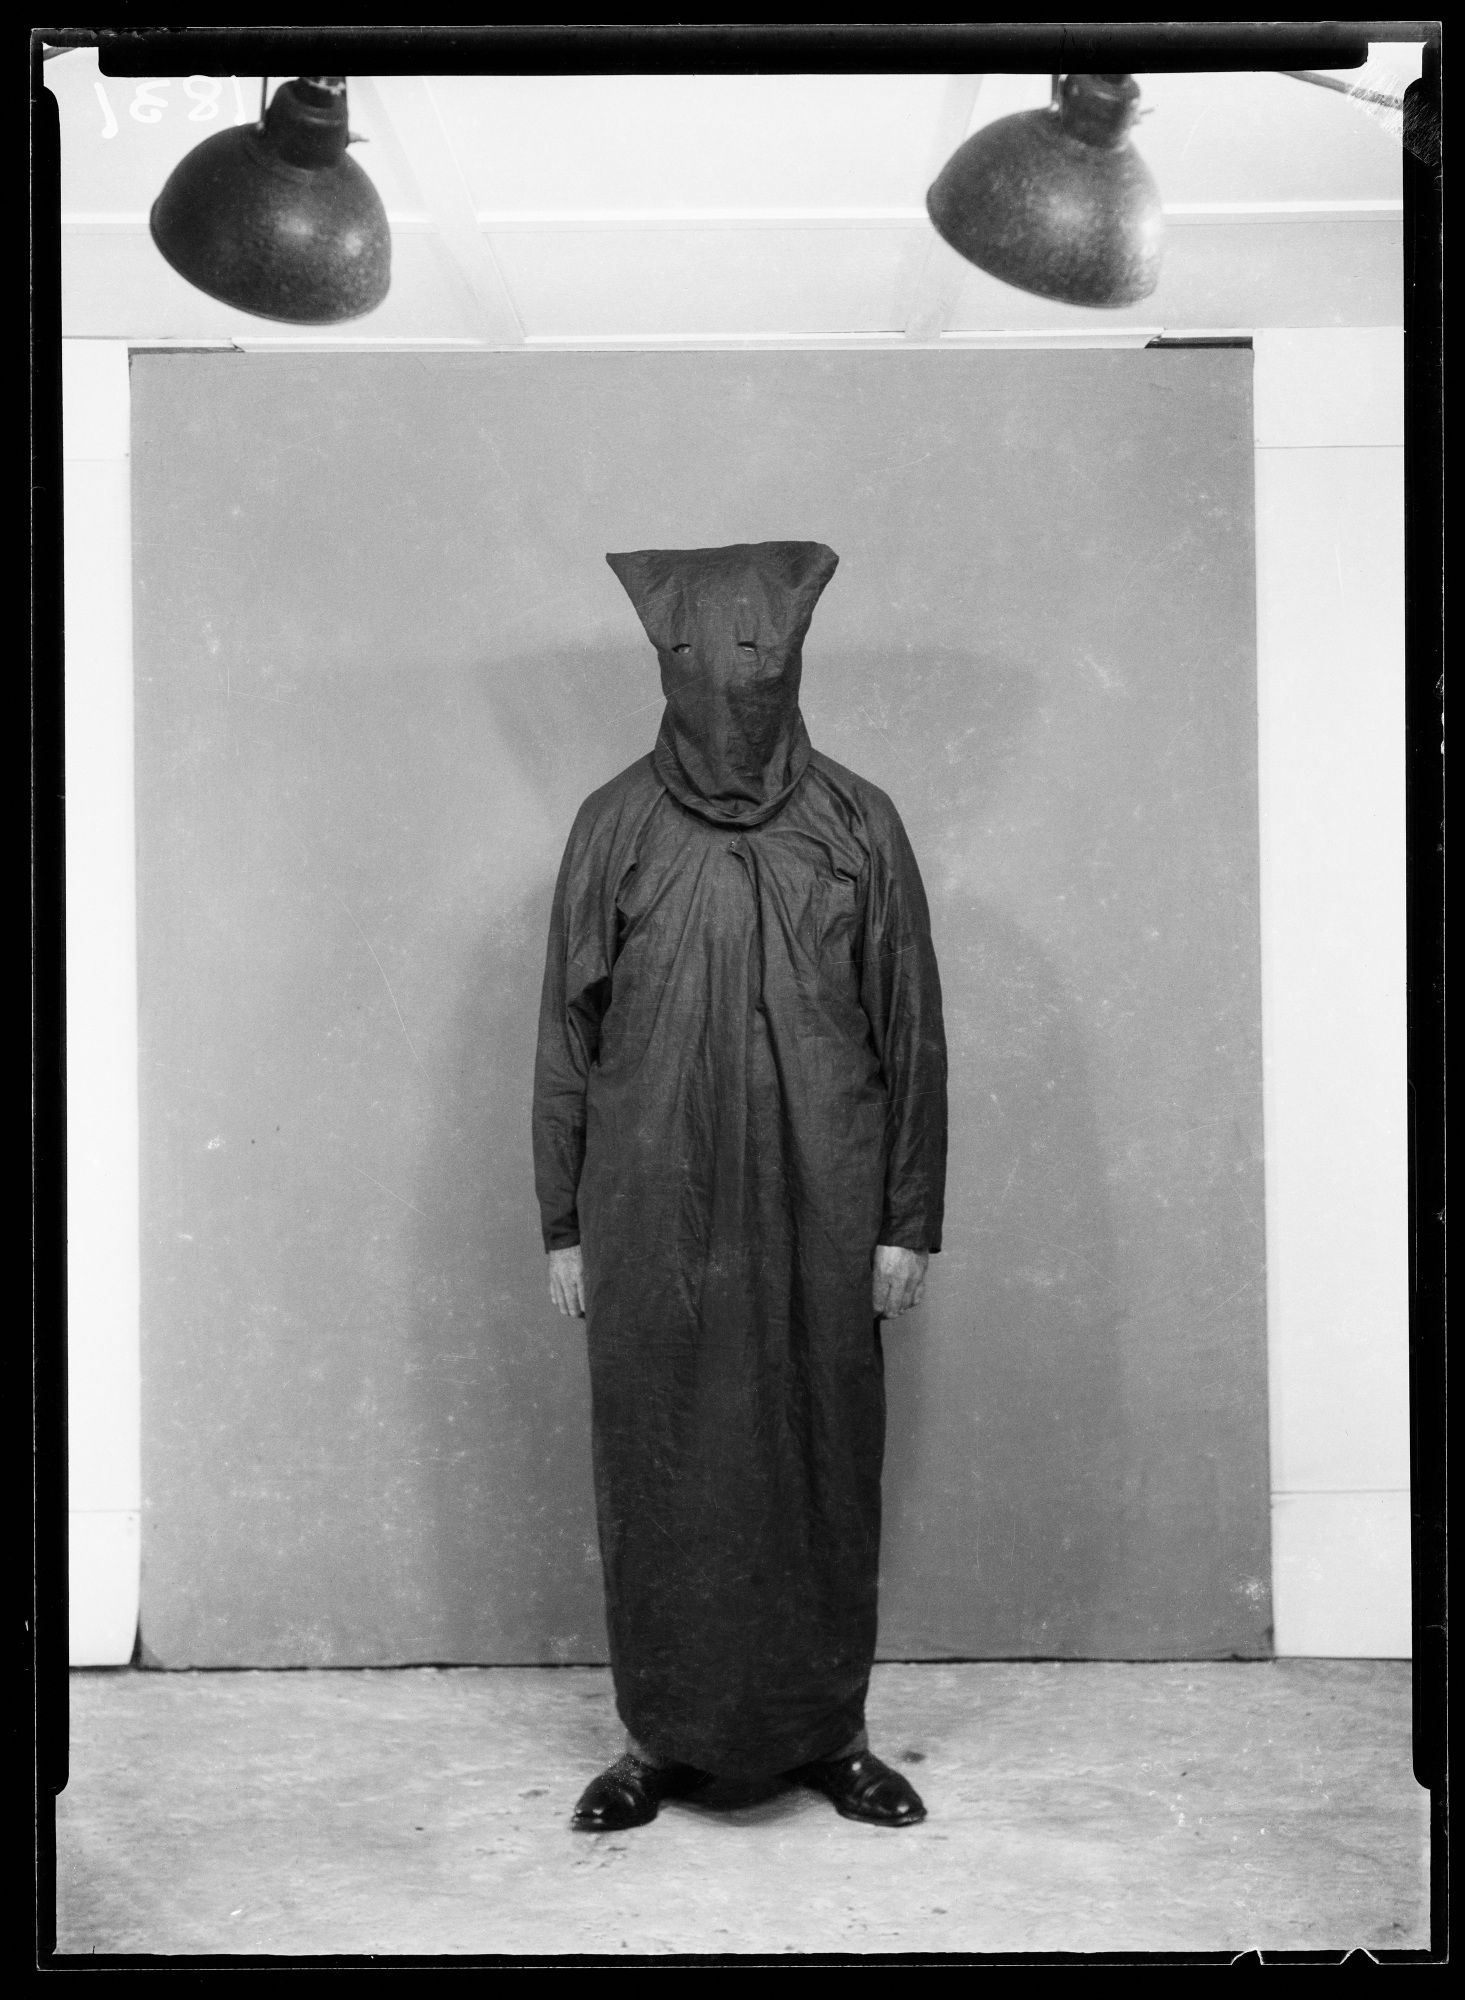 Man wearing dark robe and hooded mask, photographed in studio with overhead studio lights and backdrop shown in use.